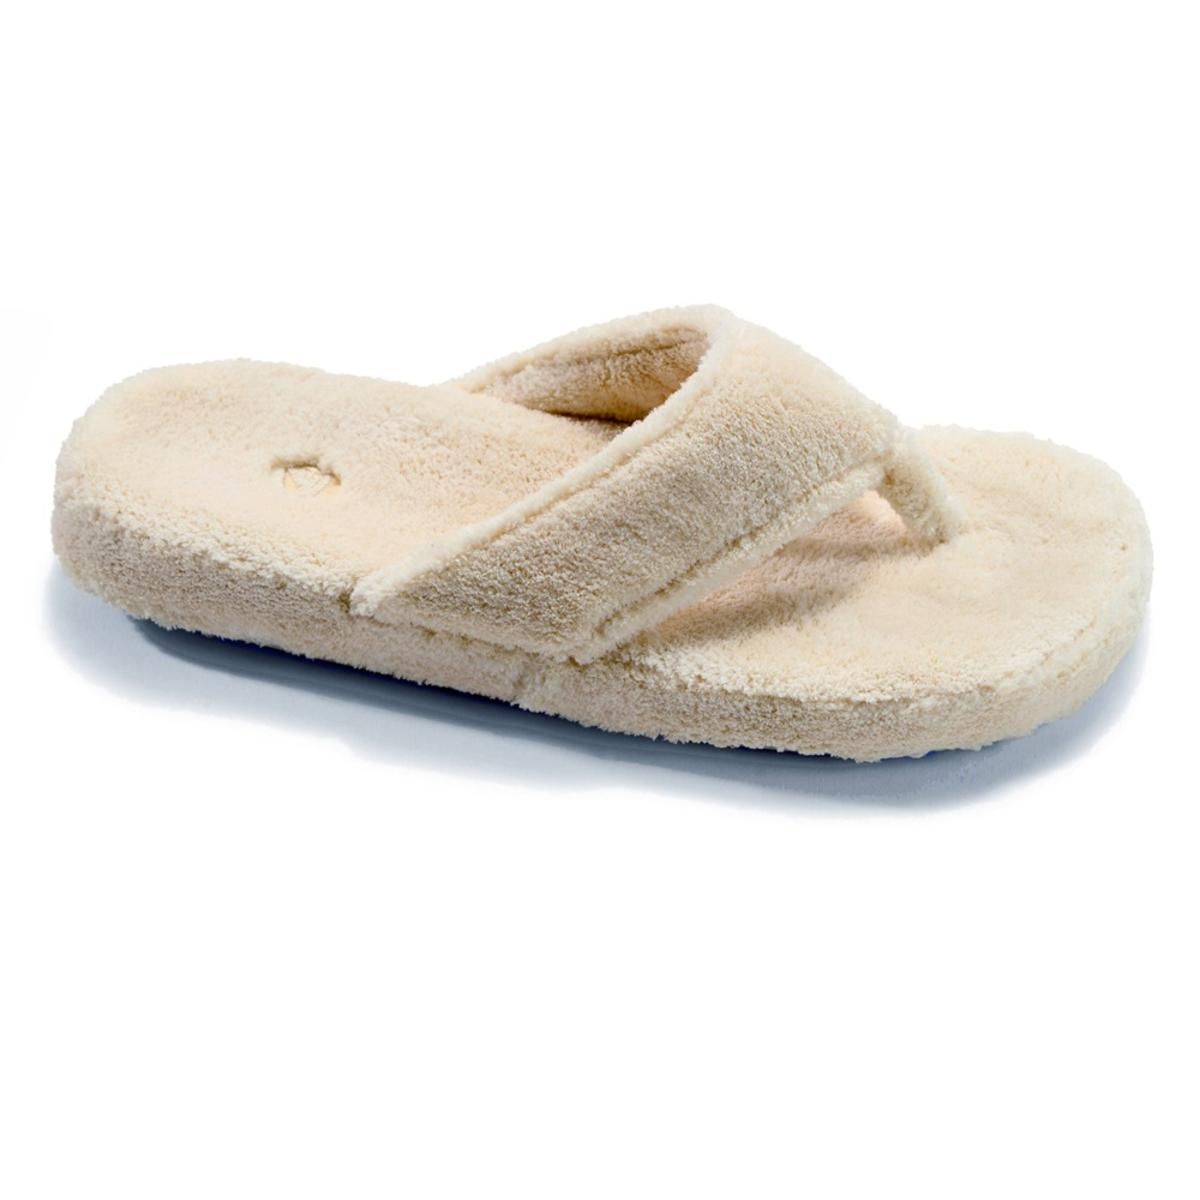 737b673faa34 ACORN Women s Spa Thong Slippers - Taupe - The Warming Store